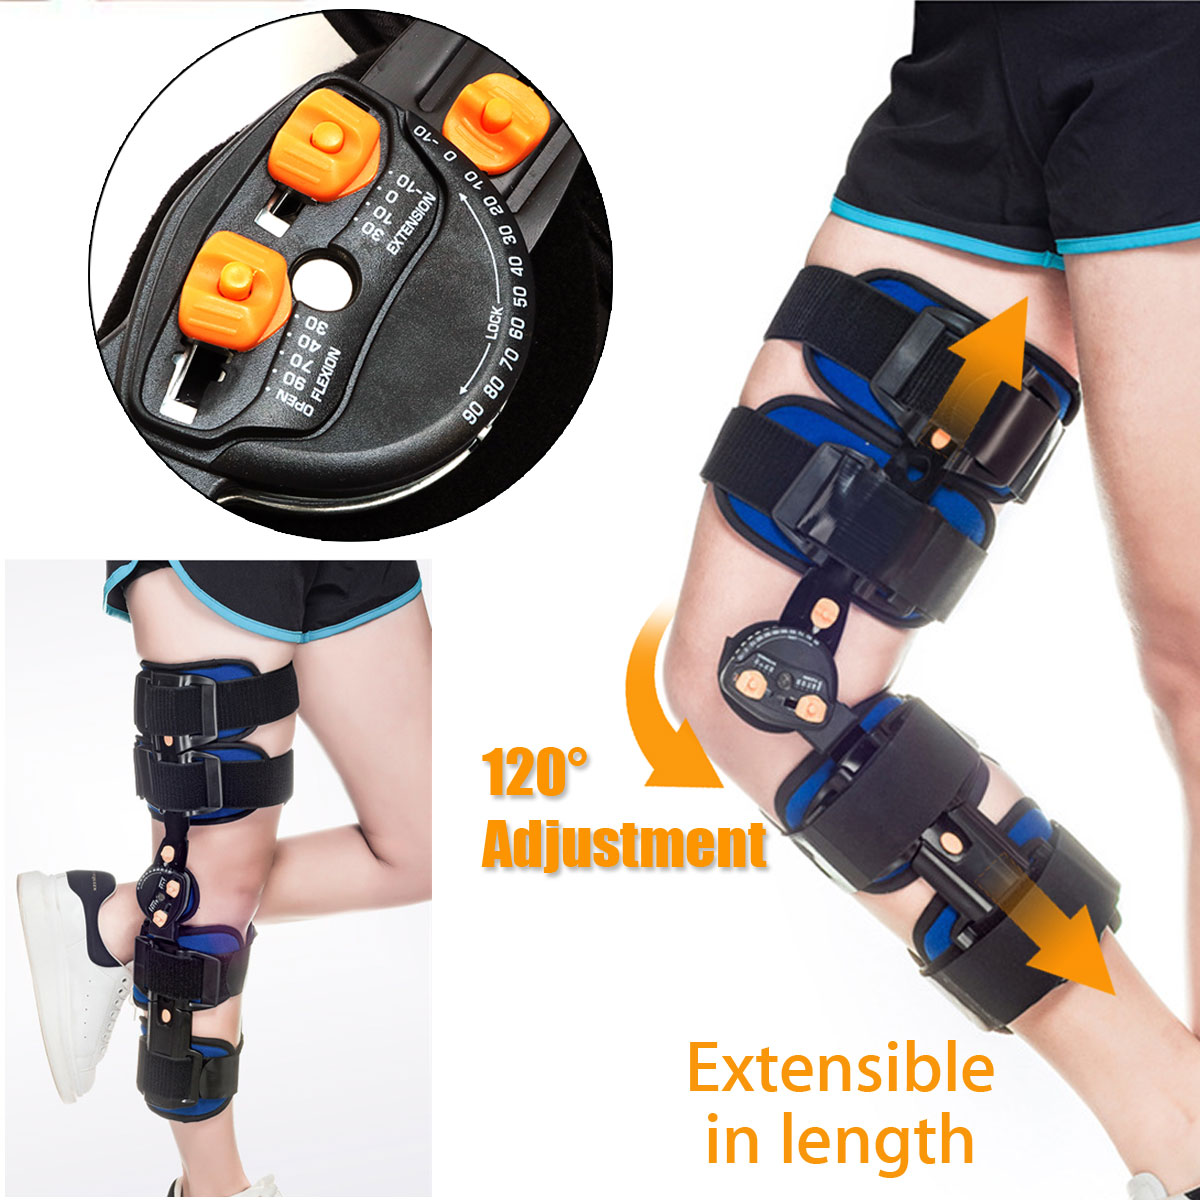 KIFIT Professional T-Scope ROM Post Op Knee Brace Adjustable Hinged Leg Universal Size Braces & SupportsKIFIT Professional T-Scope ROM Post Op Knee Brace Adjustable Hinged Leg Universal Size Braces & Supports